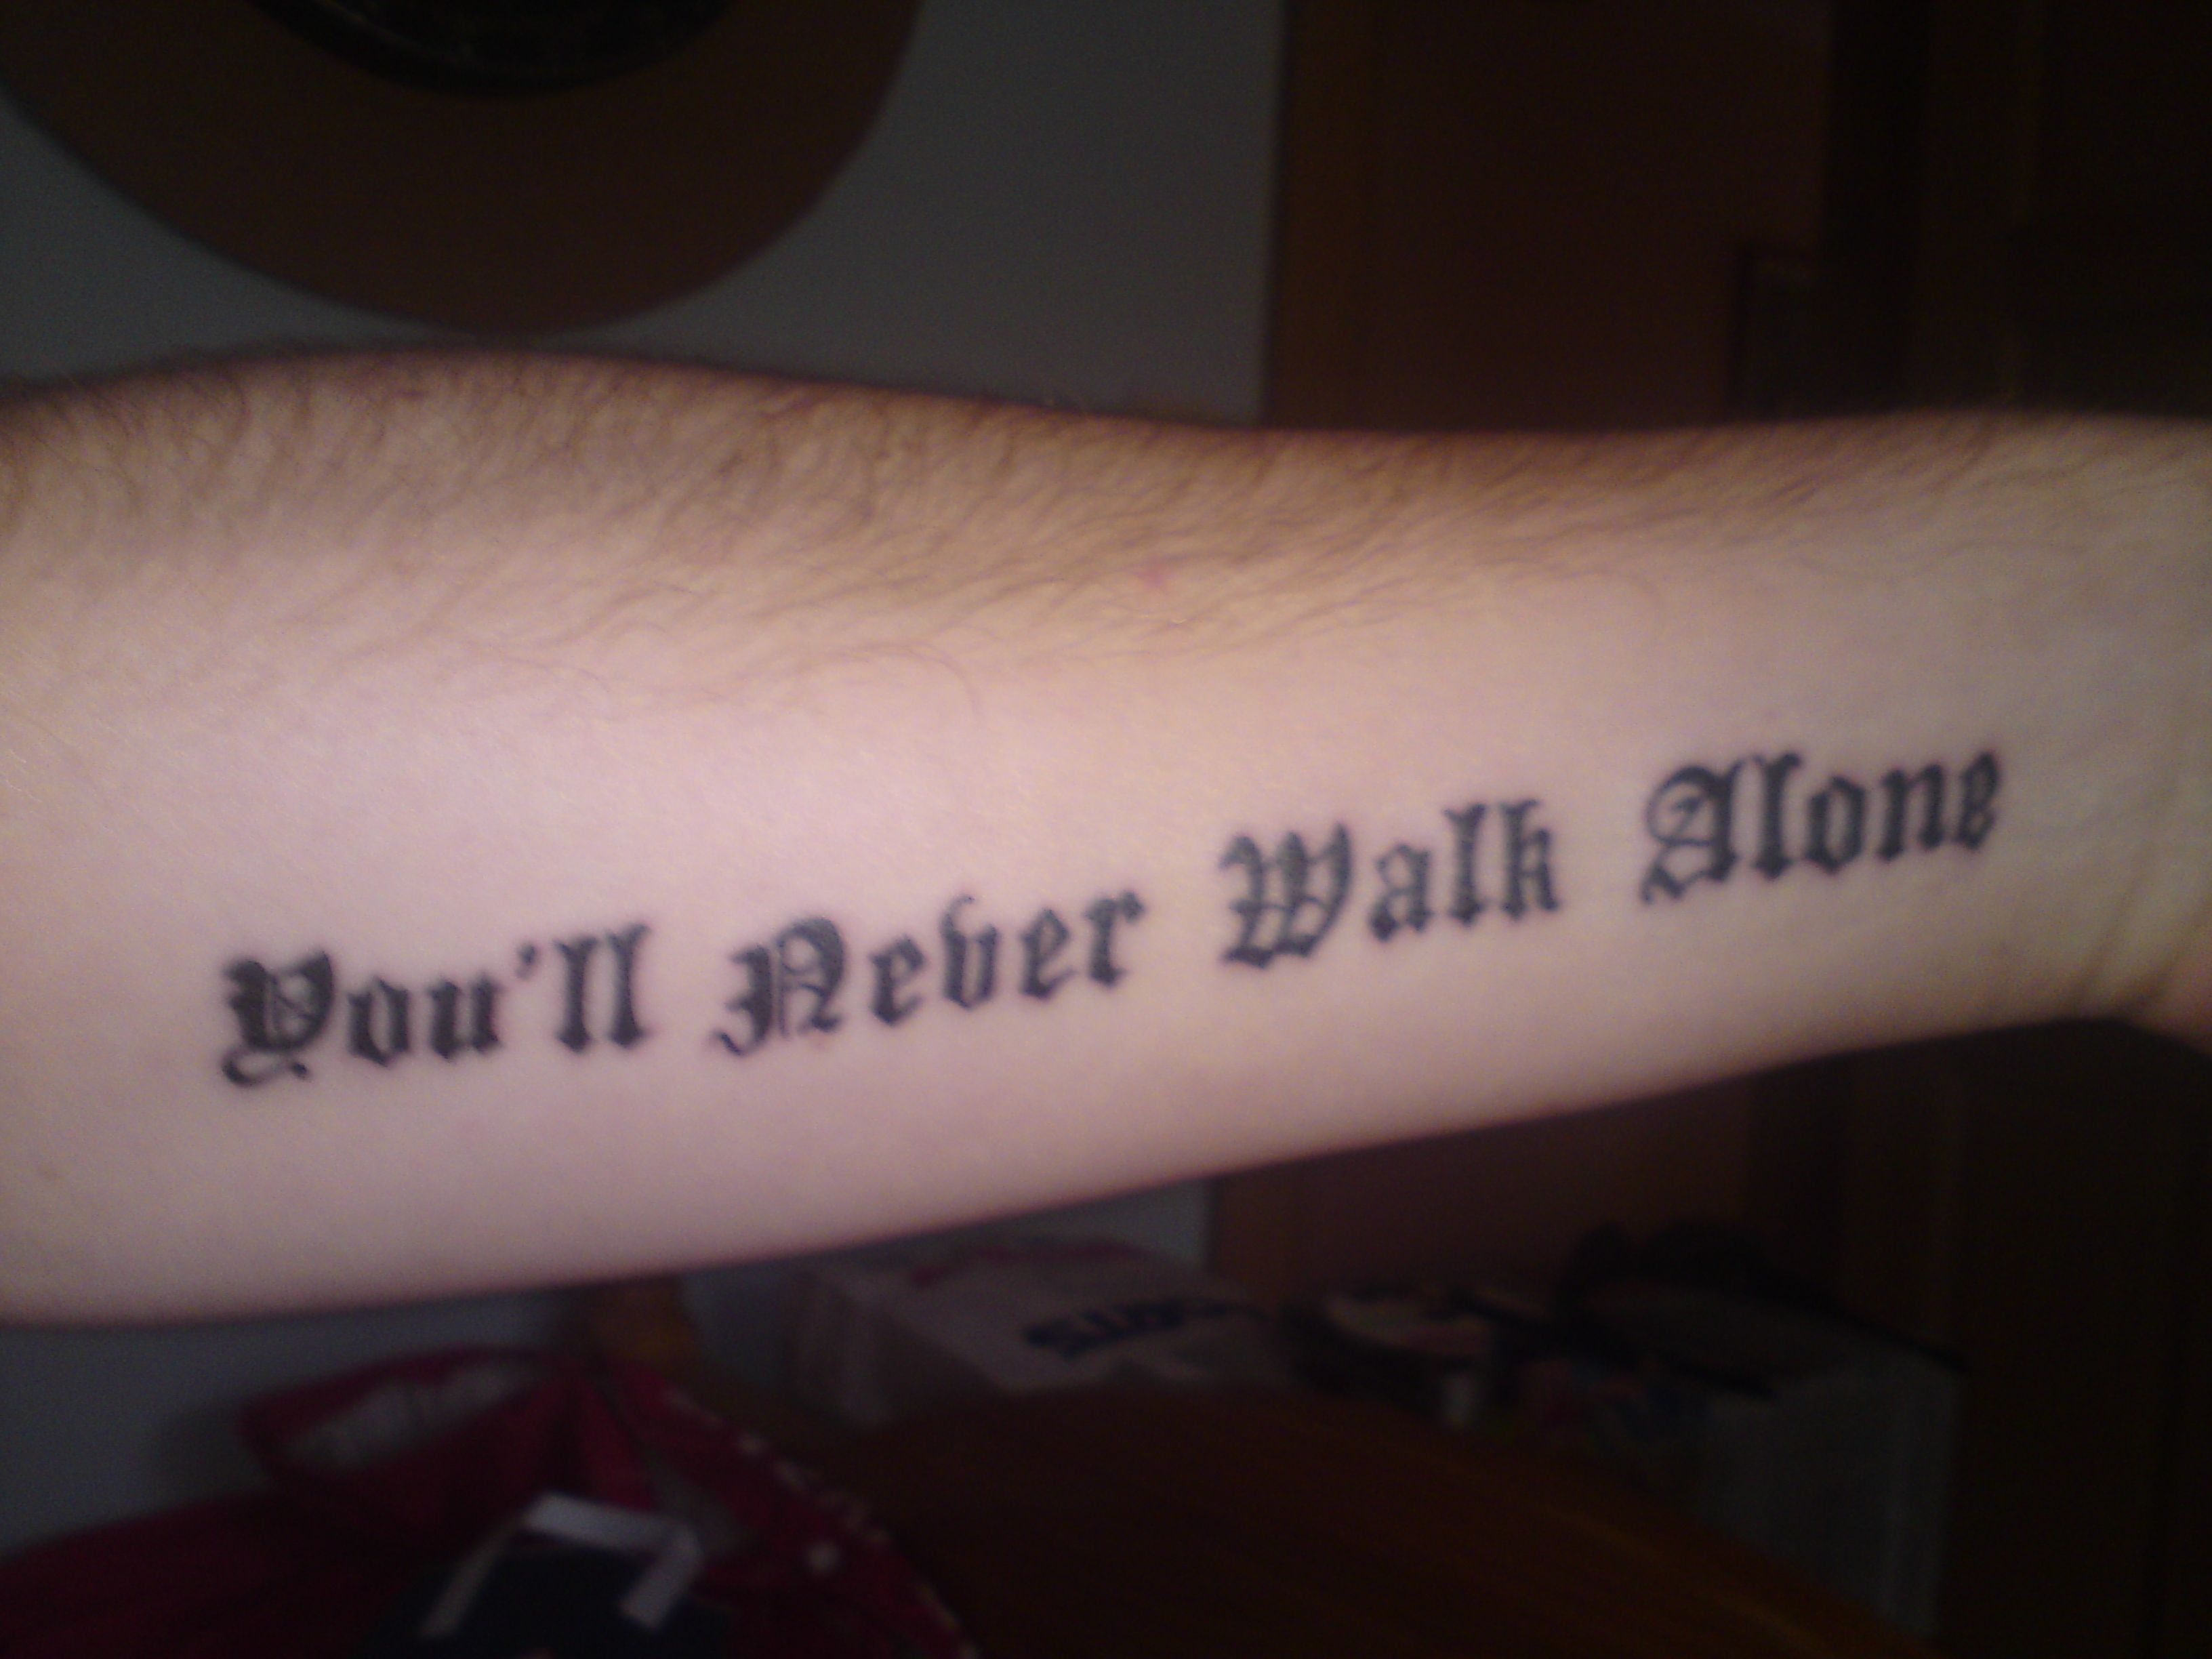 You Ll Never Walk Alone Tattoo Youll Tattoo Alone tattoo